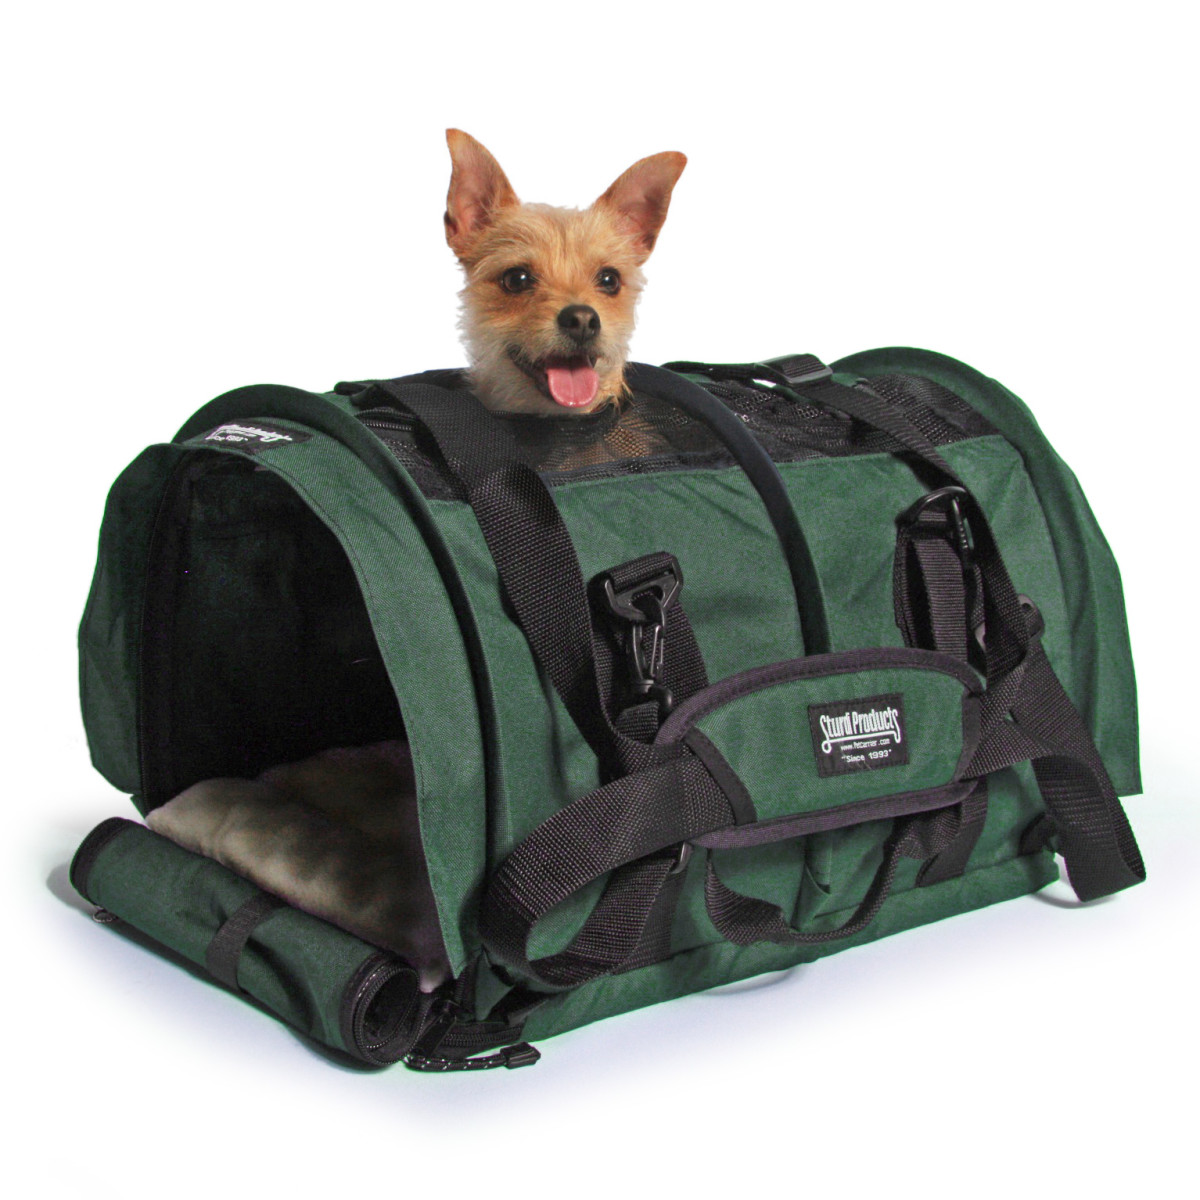 This super light, super strong and easy-to-handle carrier is a top pick and one I use for my own dog.